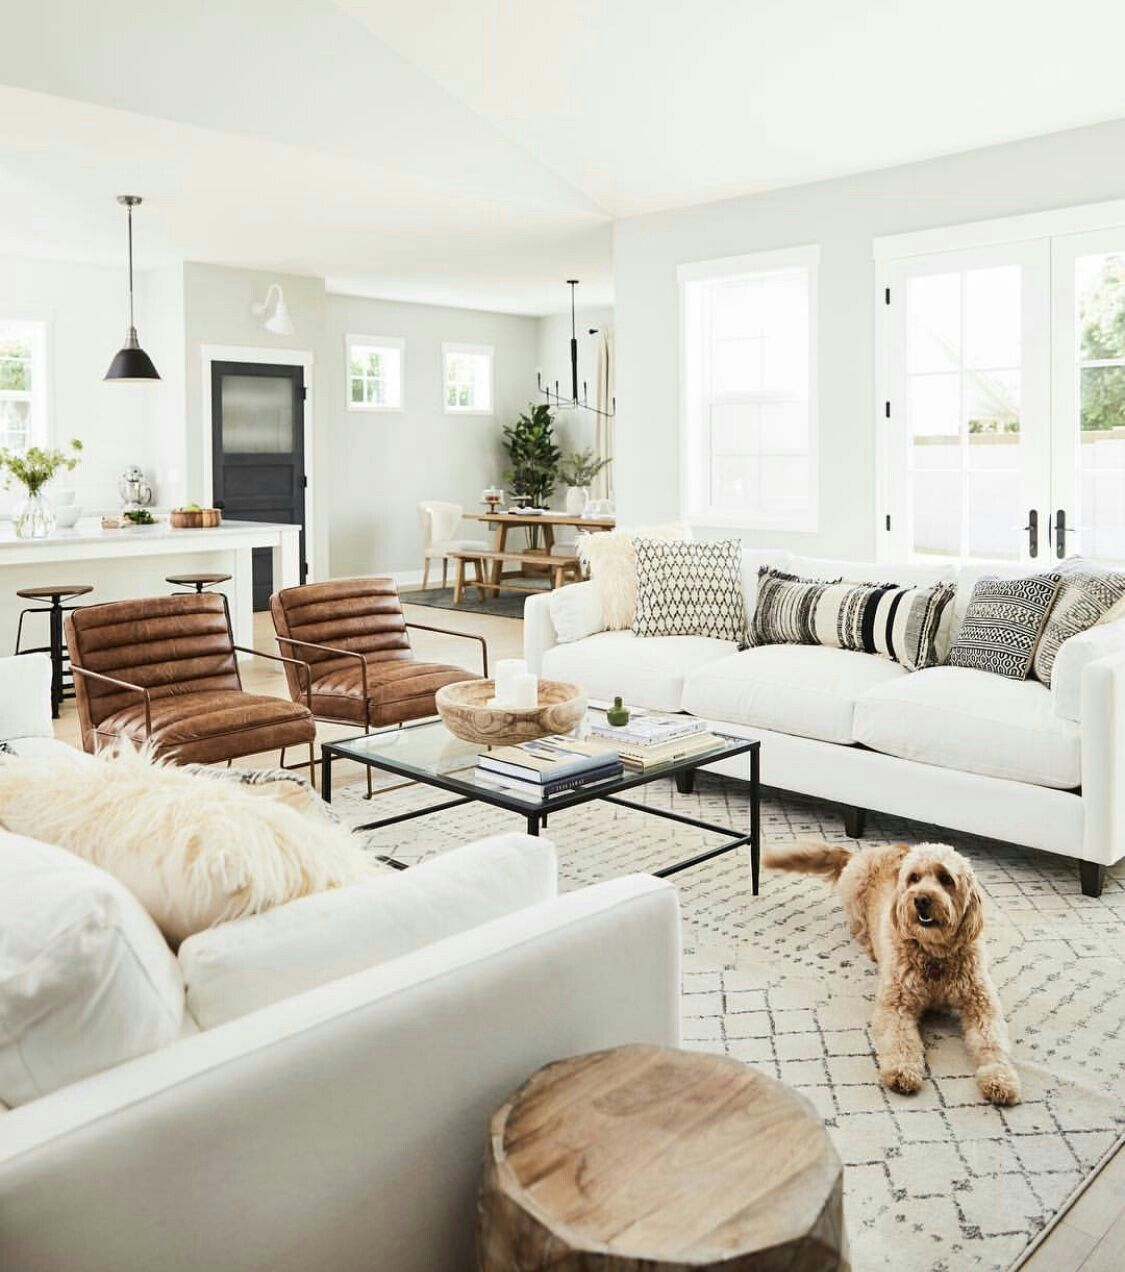 This Space Is Symmetrical In Design It Has The Same White Couches Facing Each Other Wi Living Room Sofa Design Farm House Living Room Living Room Inspiration #small #living #room #arm #chairs